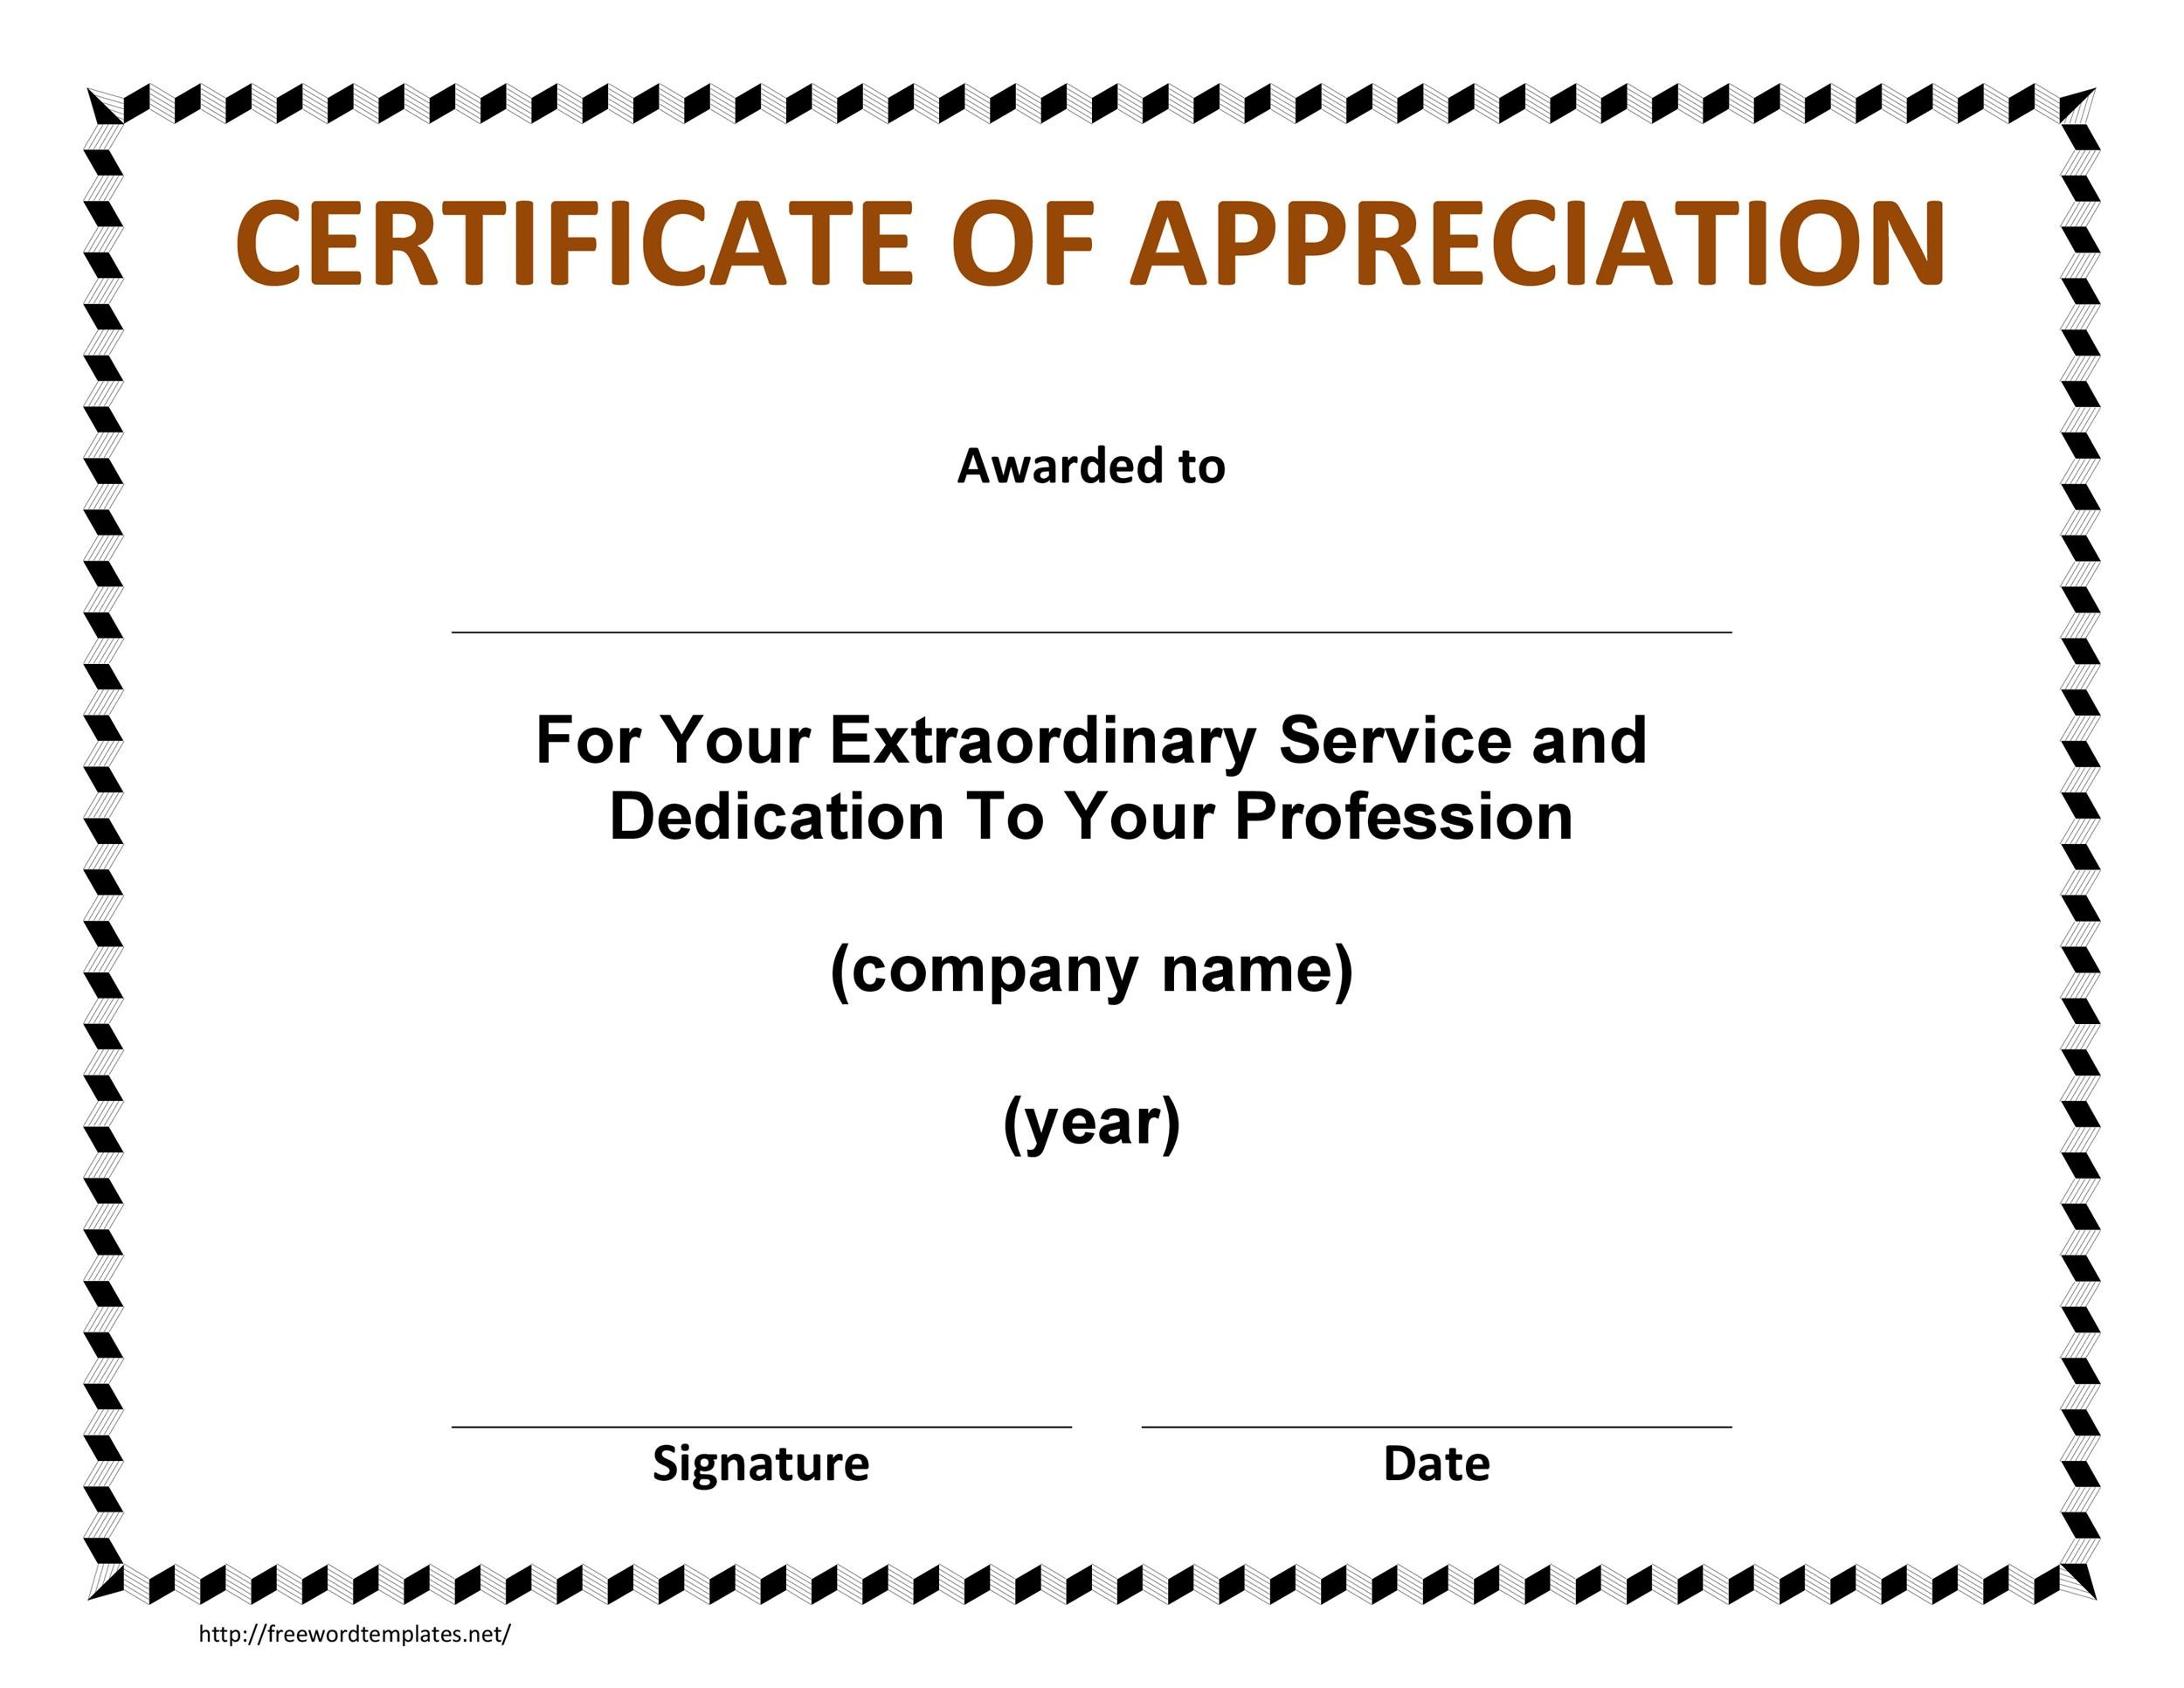 Customer service certificate template geccetackletarts 30 free certificate of appreciation templates and letters customer service certificate template spiritdancerdesigns